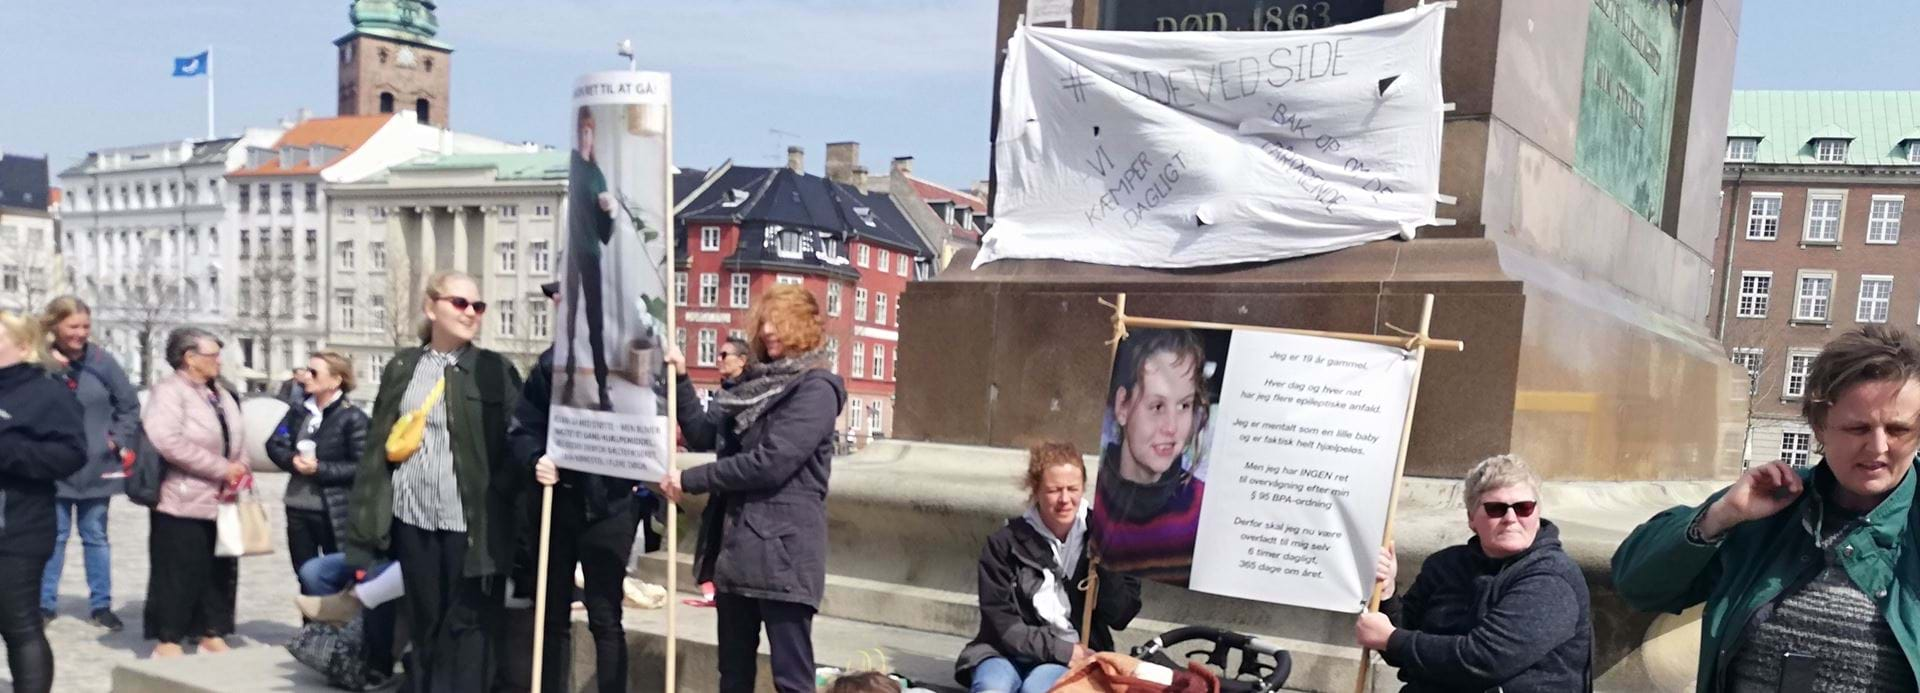 Demonstration Christiansborg 24.04.19